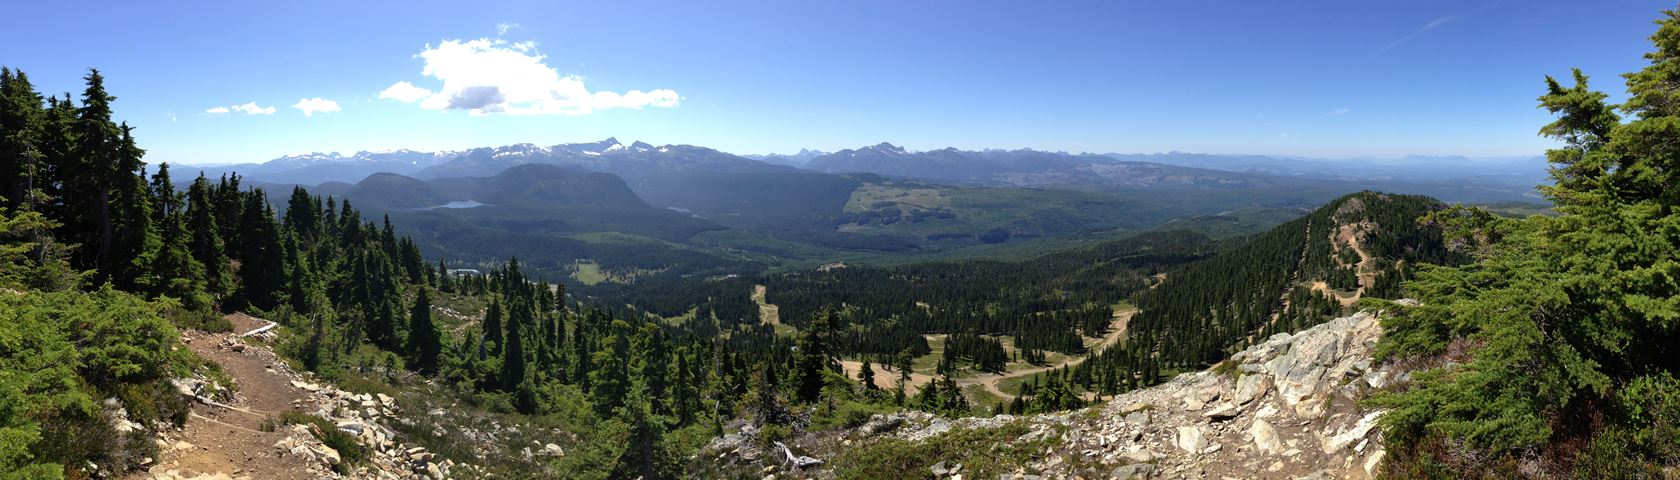 Mount Washington, Vancouver Island